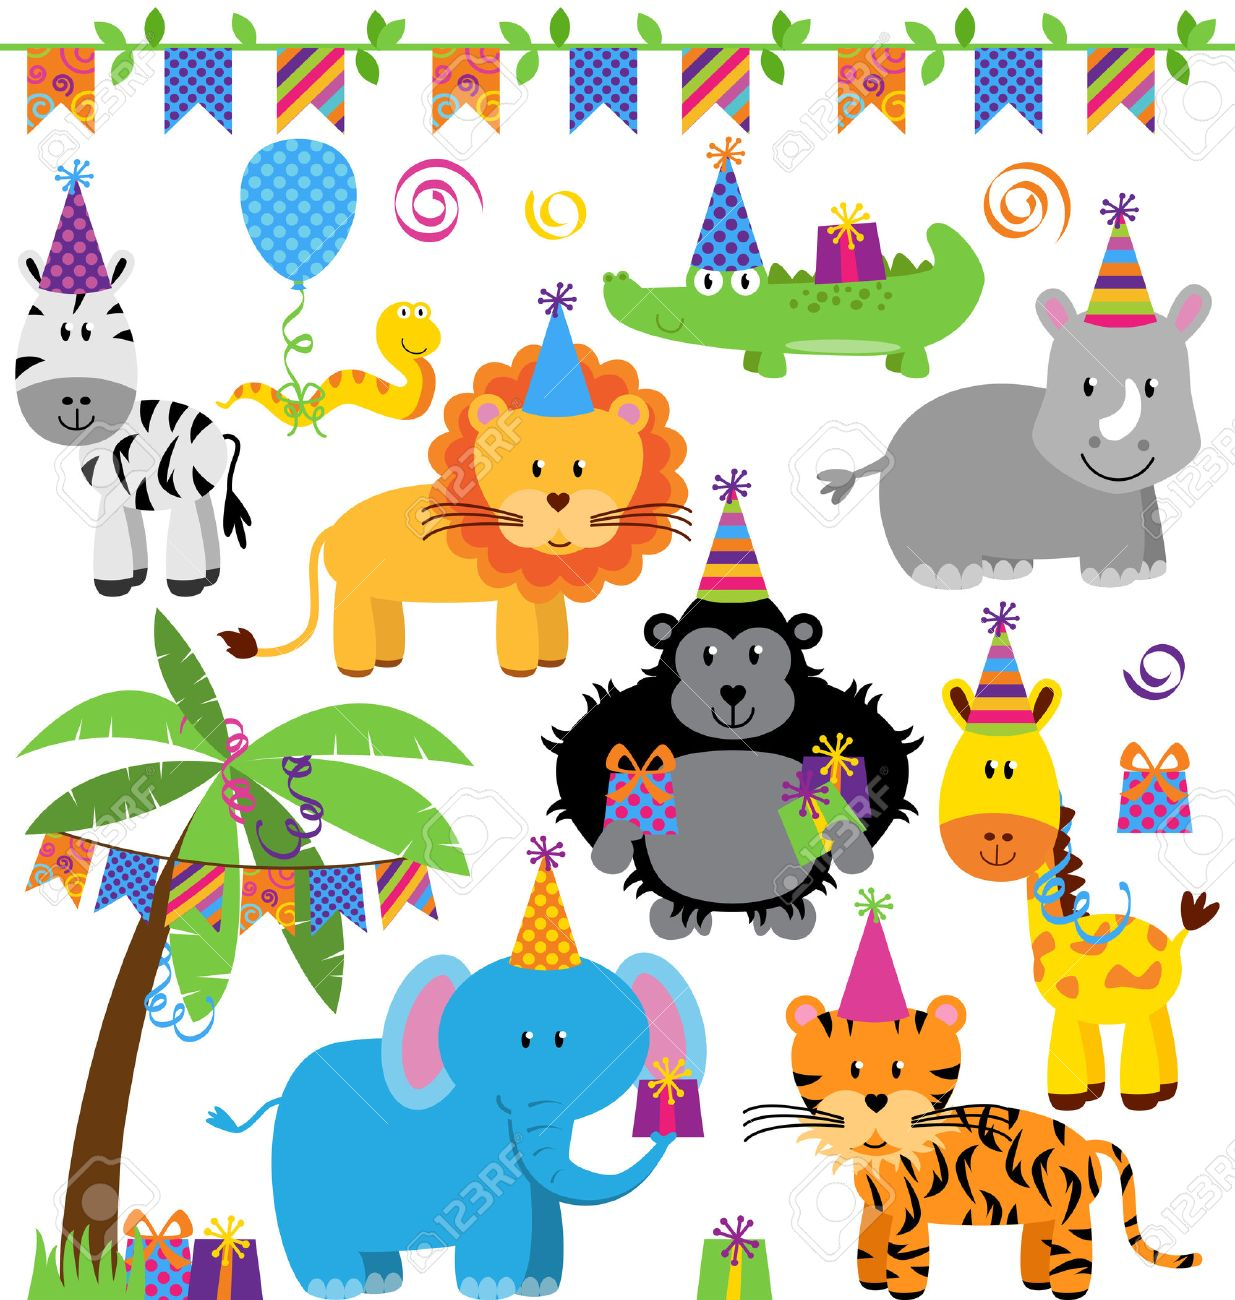 Vector Collection of Birthday Party Themed Jungle, Zoo or Safari Animals - 40603610